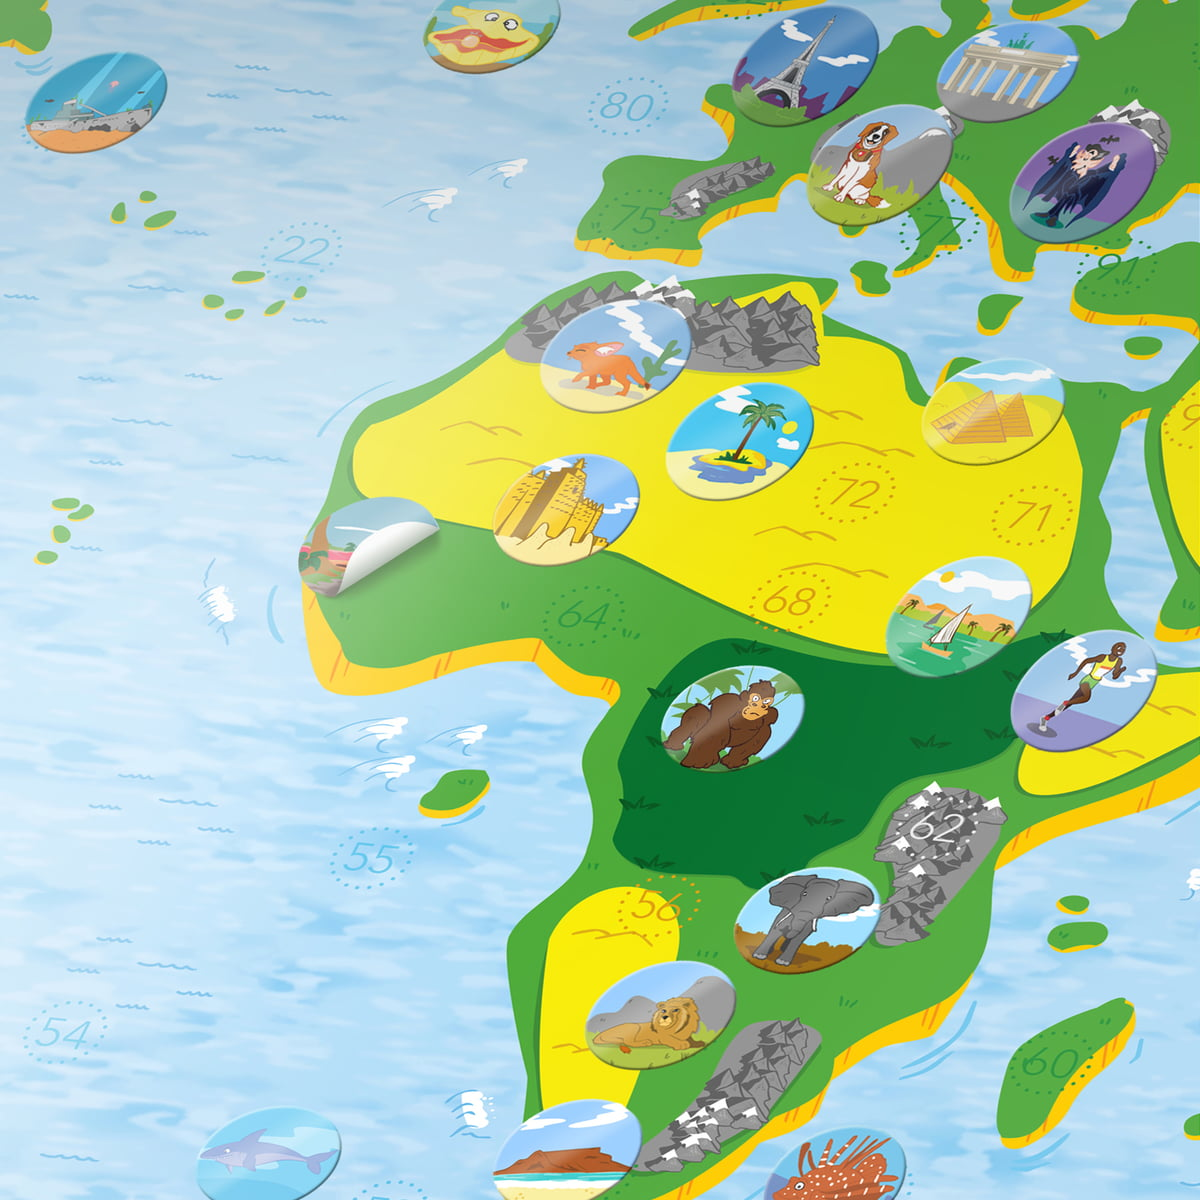 Buy The Childrens World Map By Awesome Maps - World map for kids